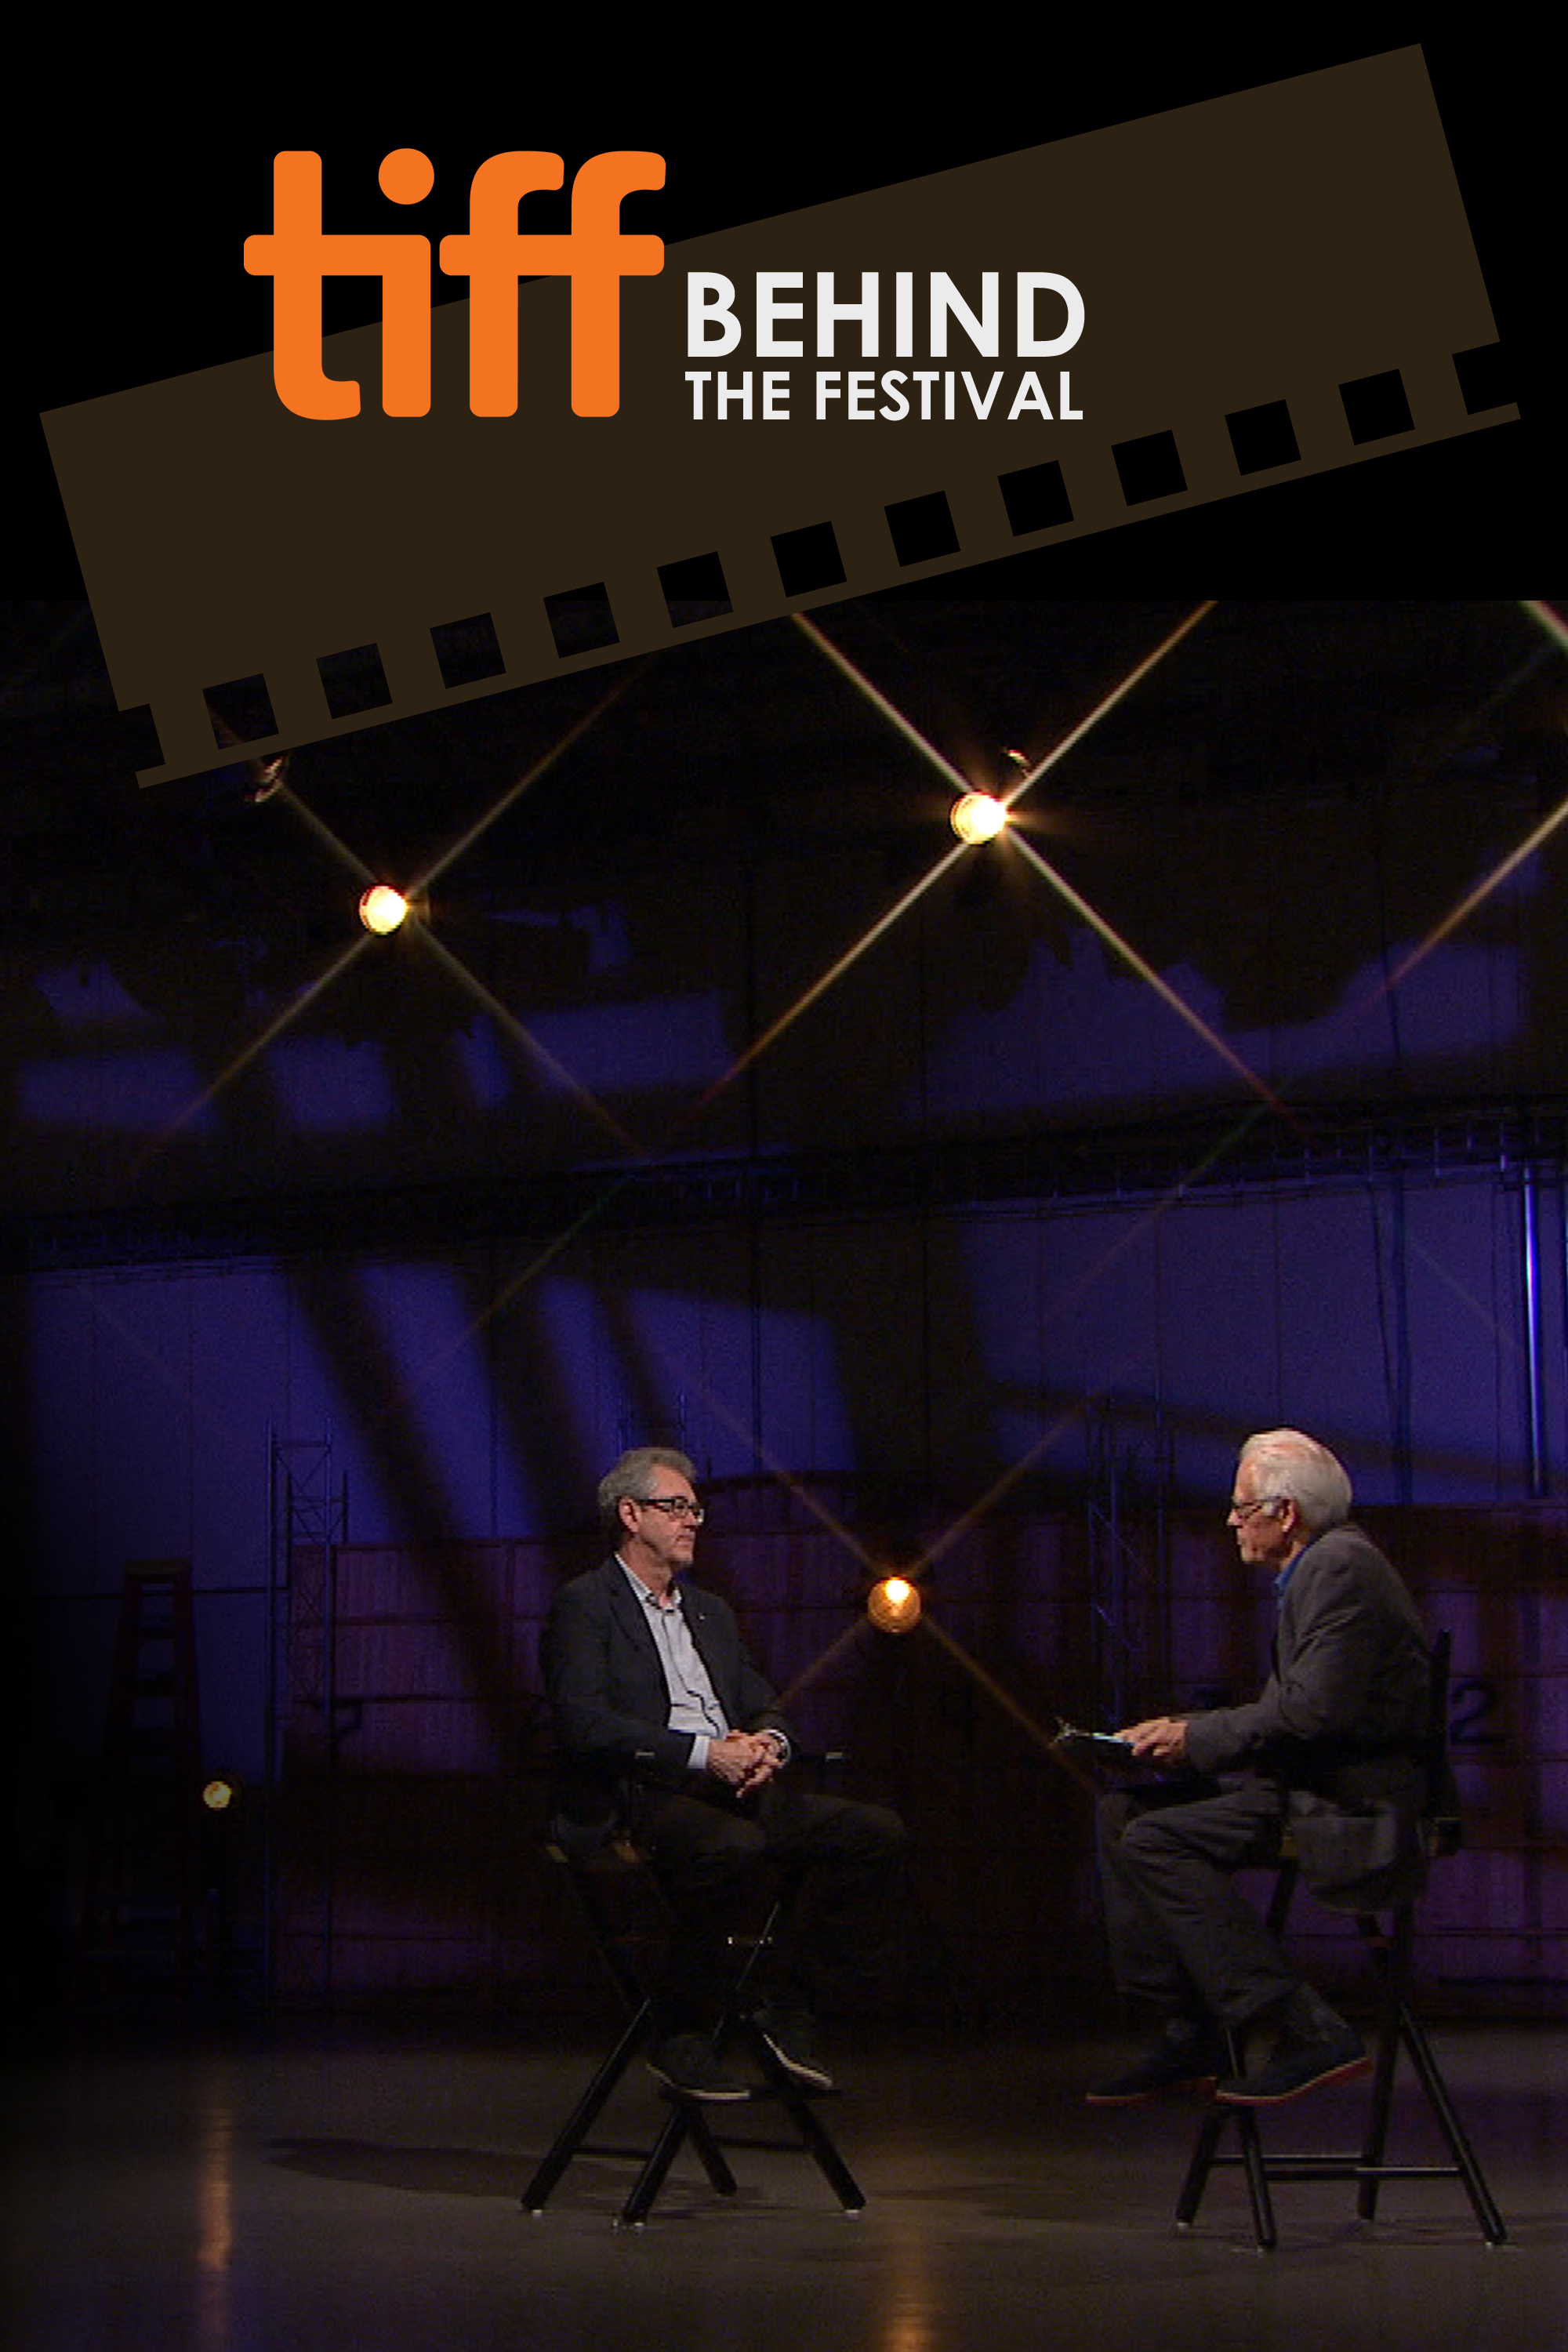 TIFF Behind the Festival | Watch Online